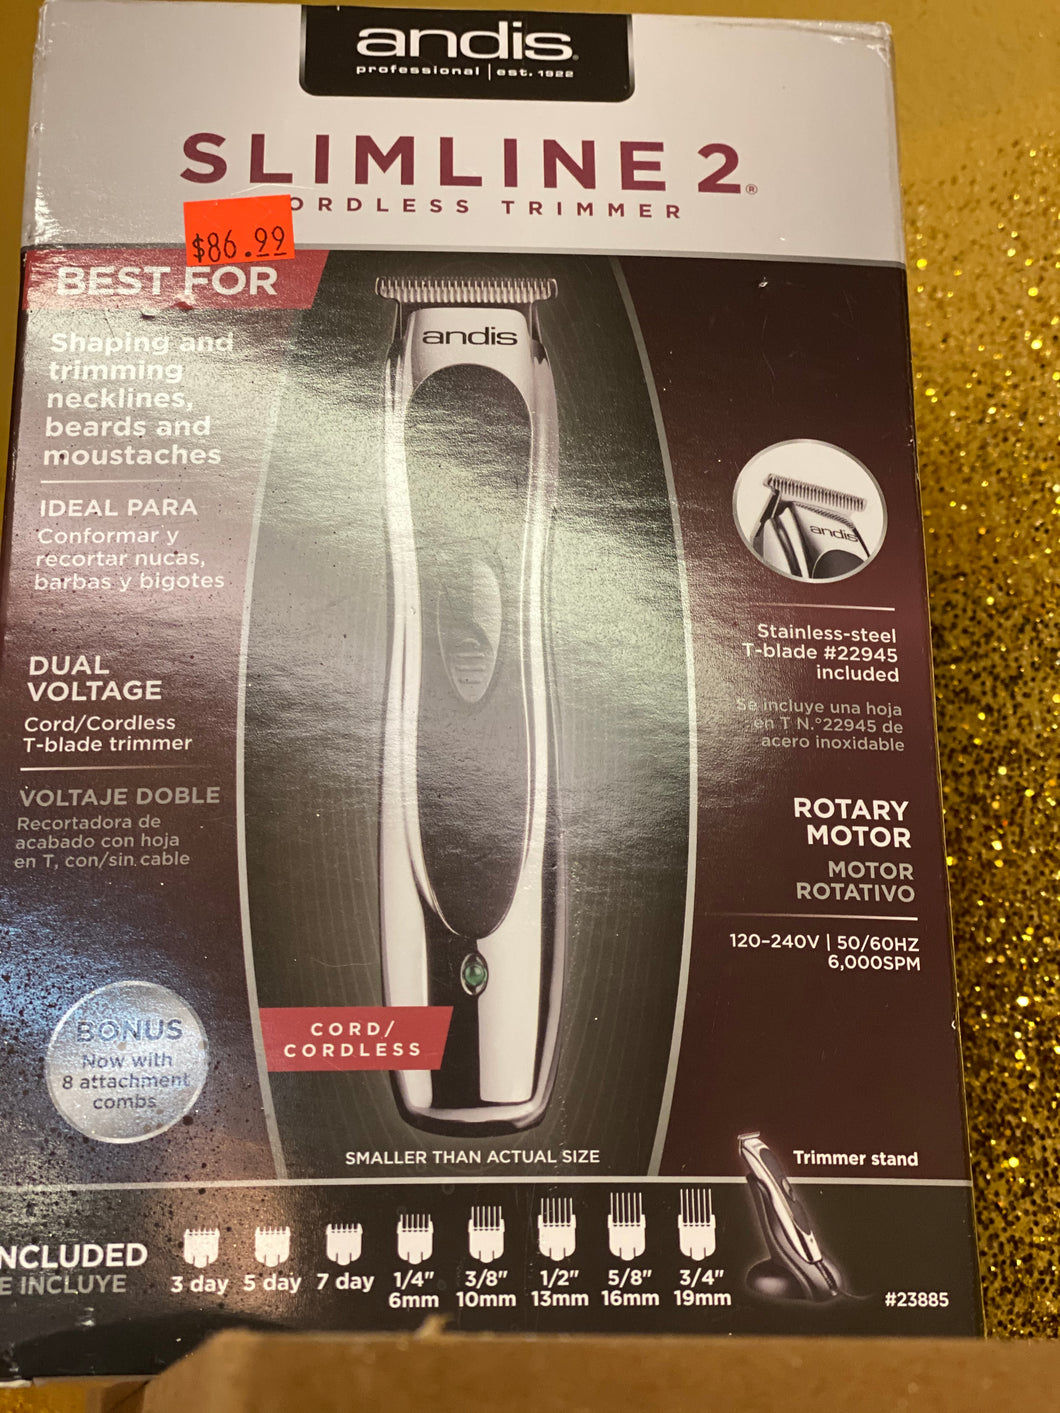 Copy of Slimline II Cordless trimmer